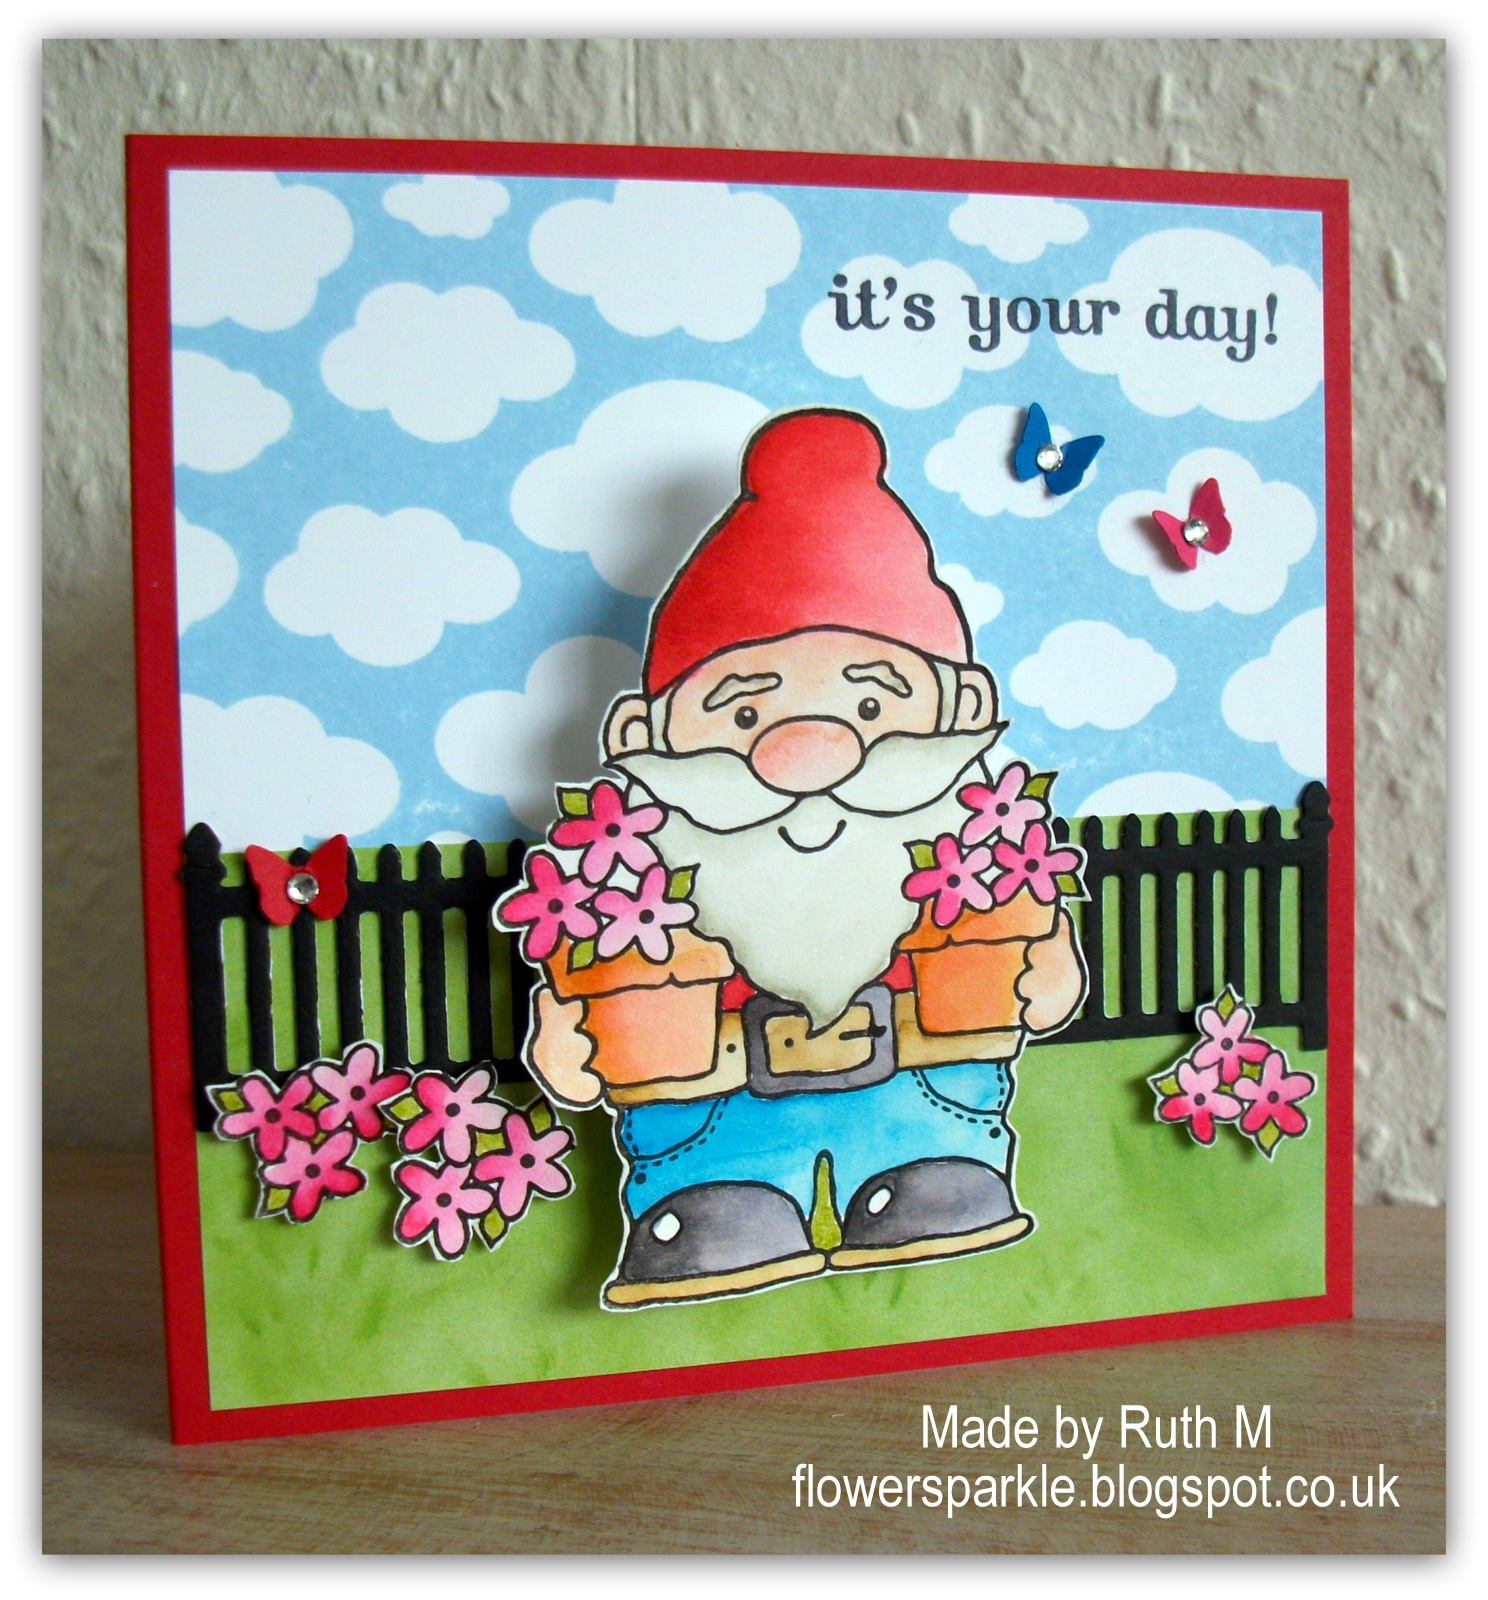 Flower sparkle wobble gnome birthday card the card i then inked and stamped just the flowers from the image coloured them fussy cut them and popped them up finally i added three teeny tiny bookmarktalkfo Image collections